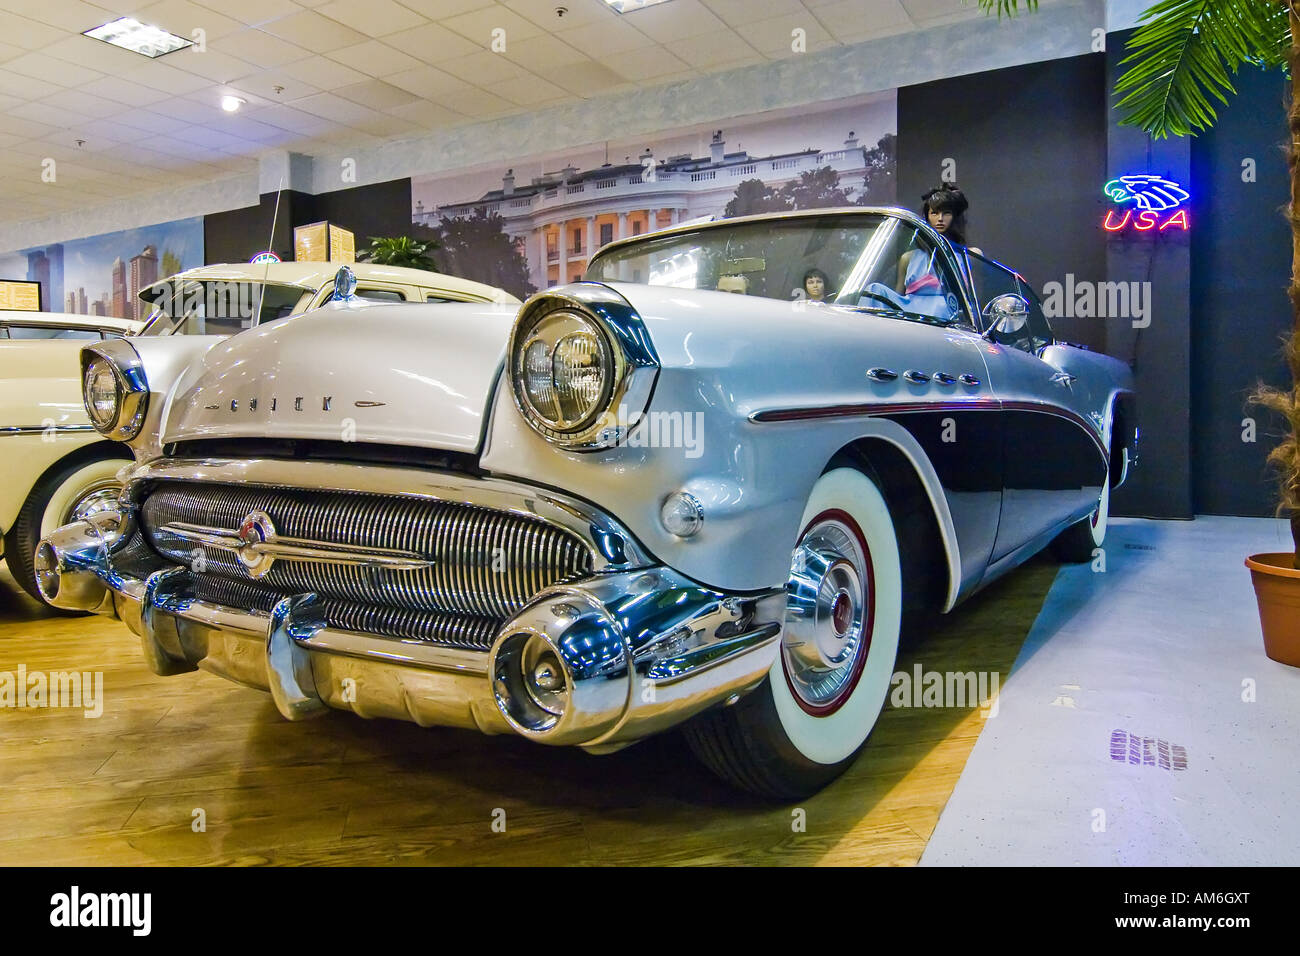 buick country series60 coupe - 1957 stock photo: 15165119 - alamy